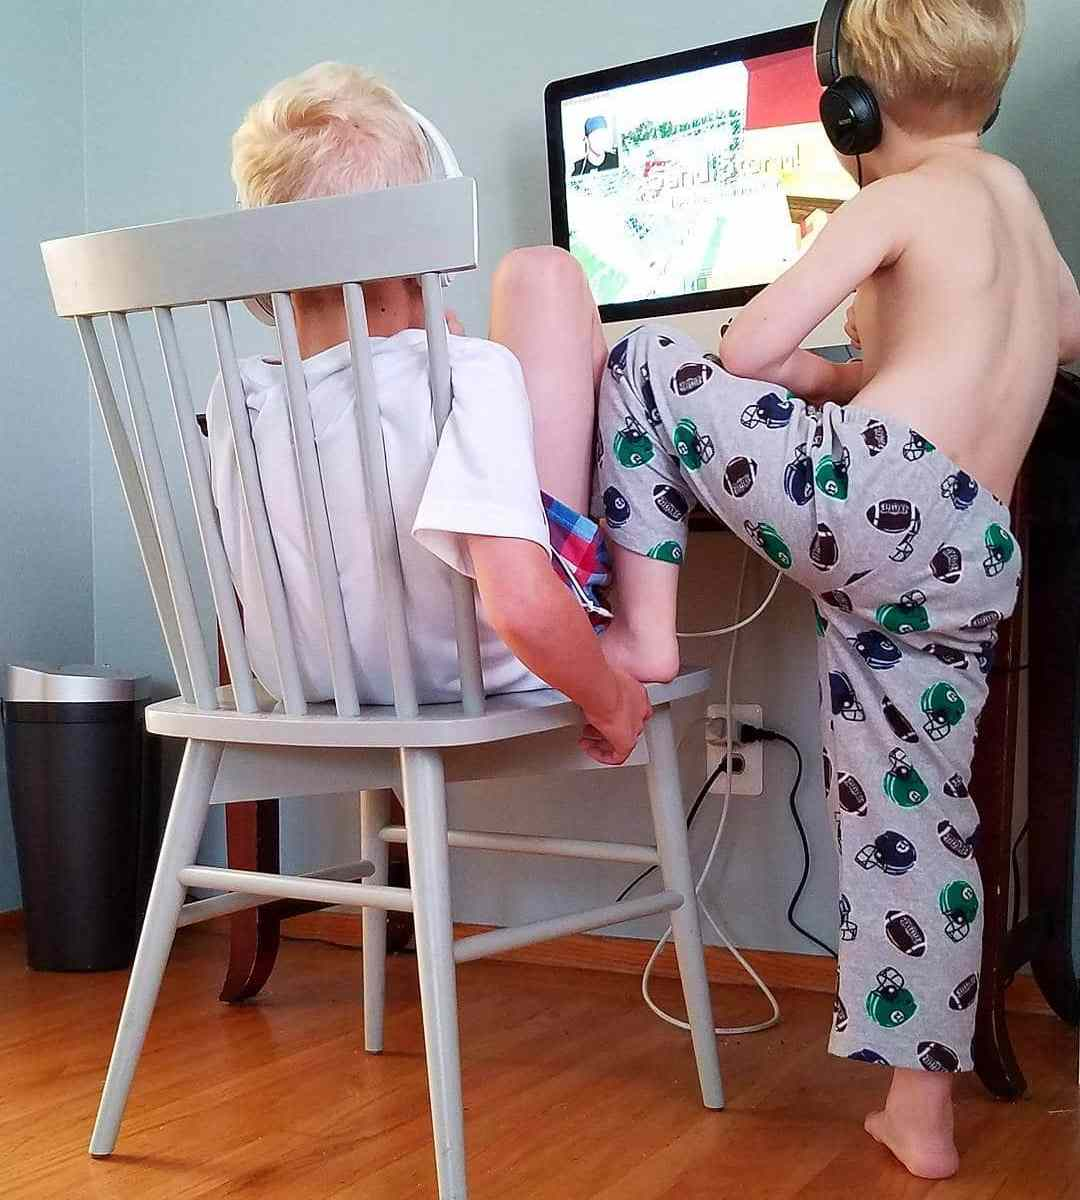 Boys at the computer